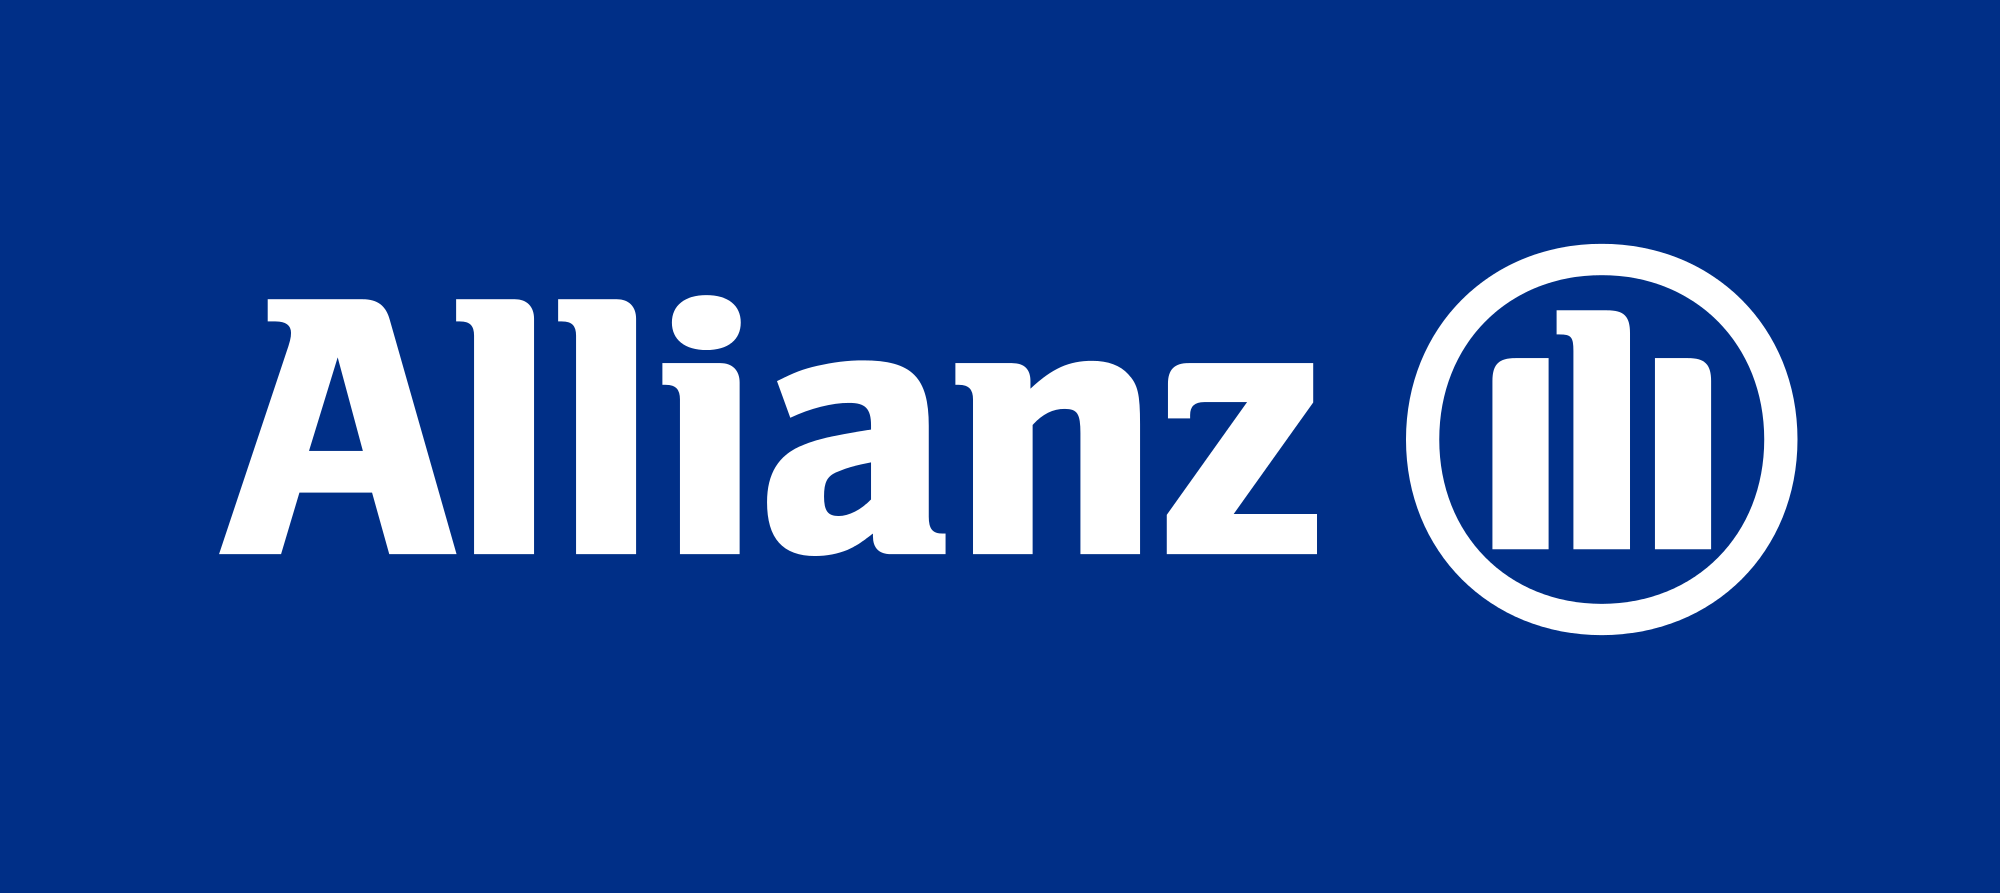 Allianz Logo Hd Full Hd Pictures